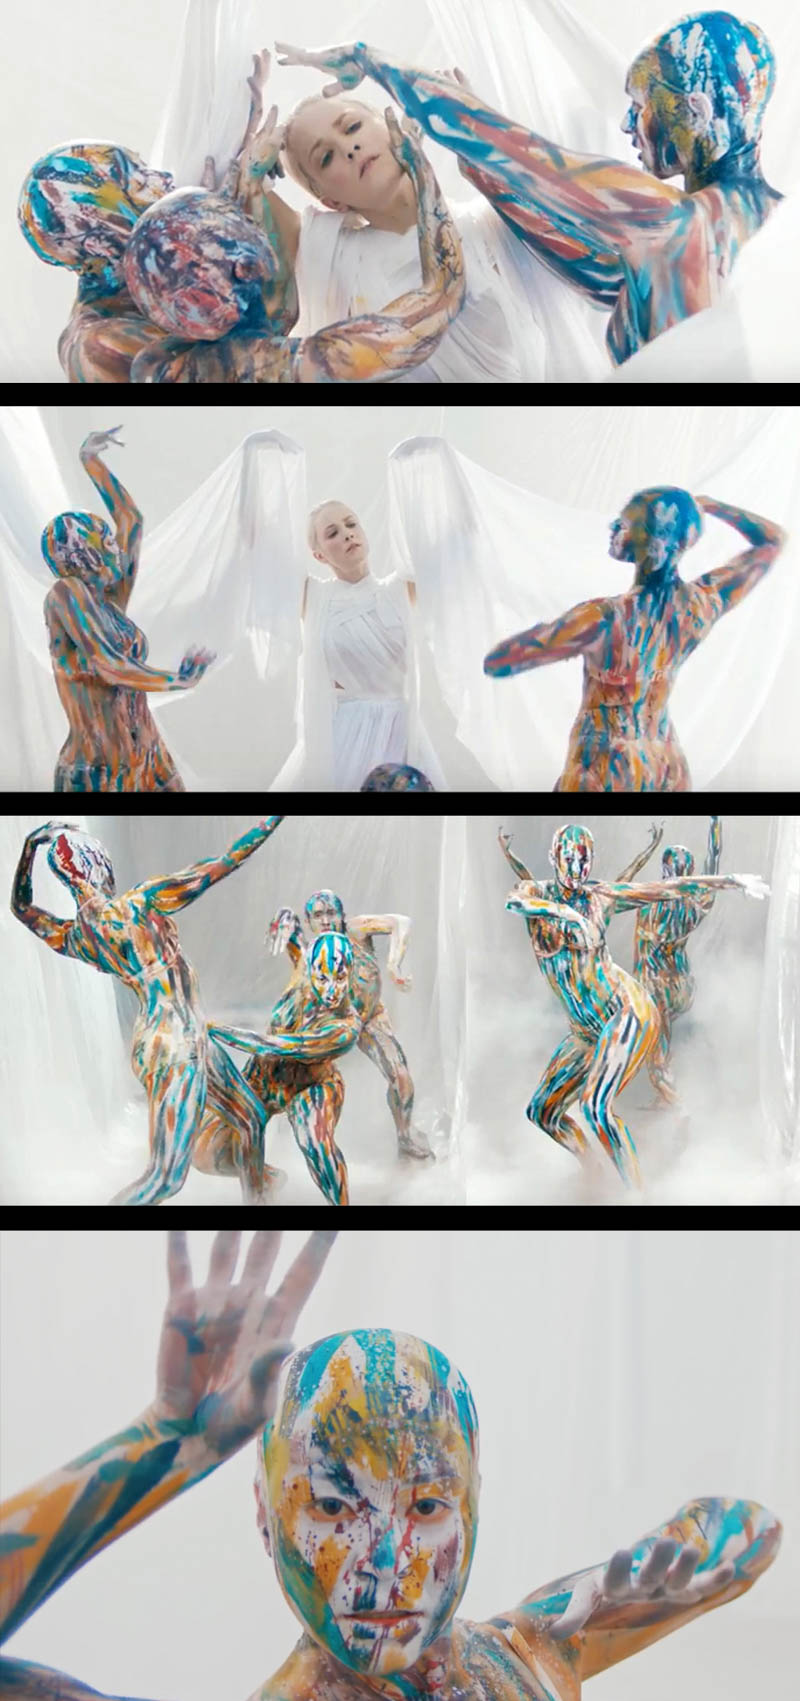 Bodypainting special fx beauty makeup Emma Louise Underflow